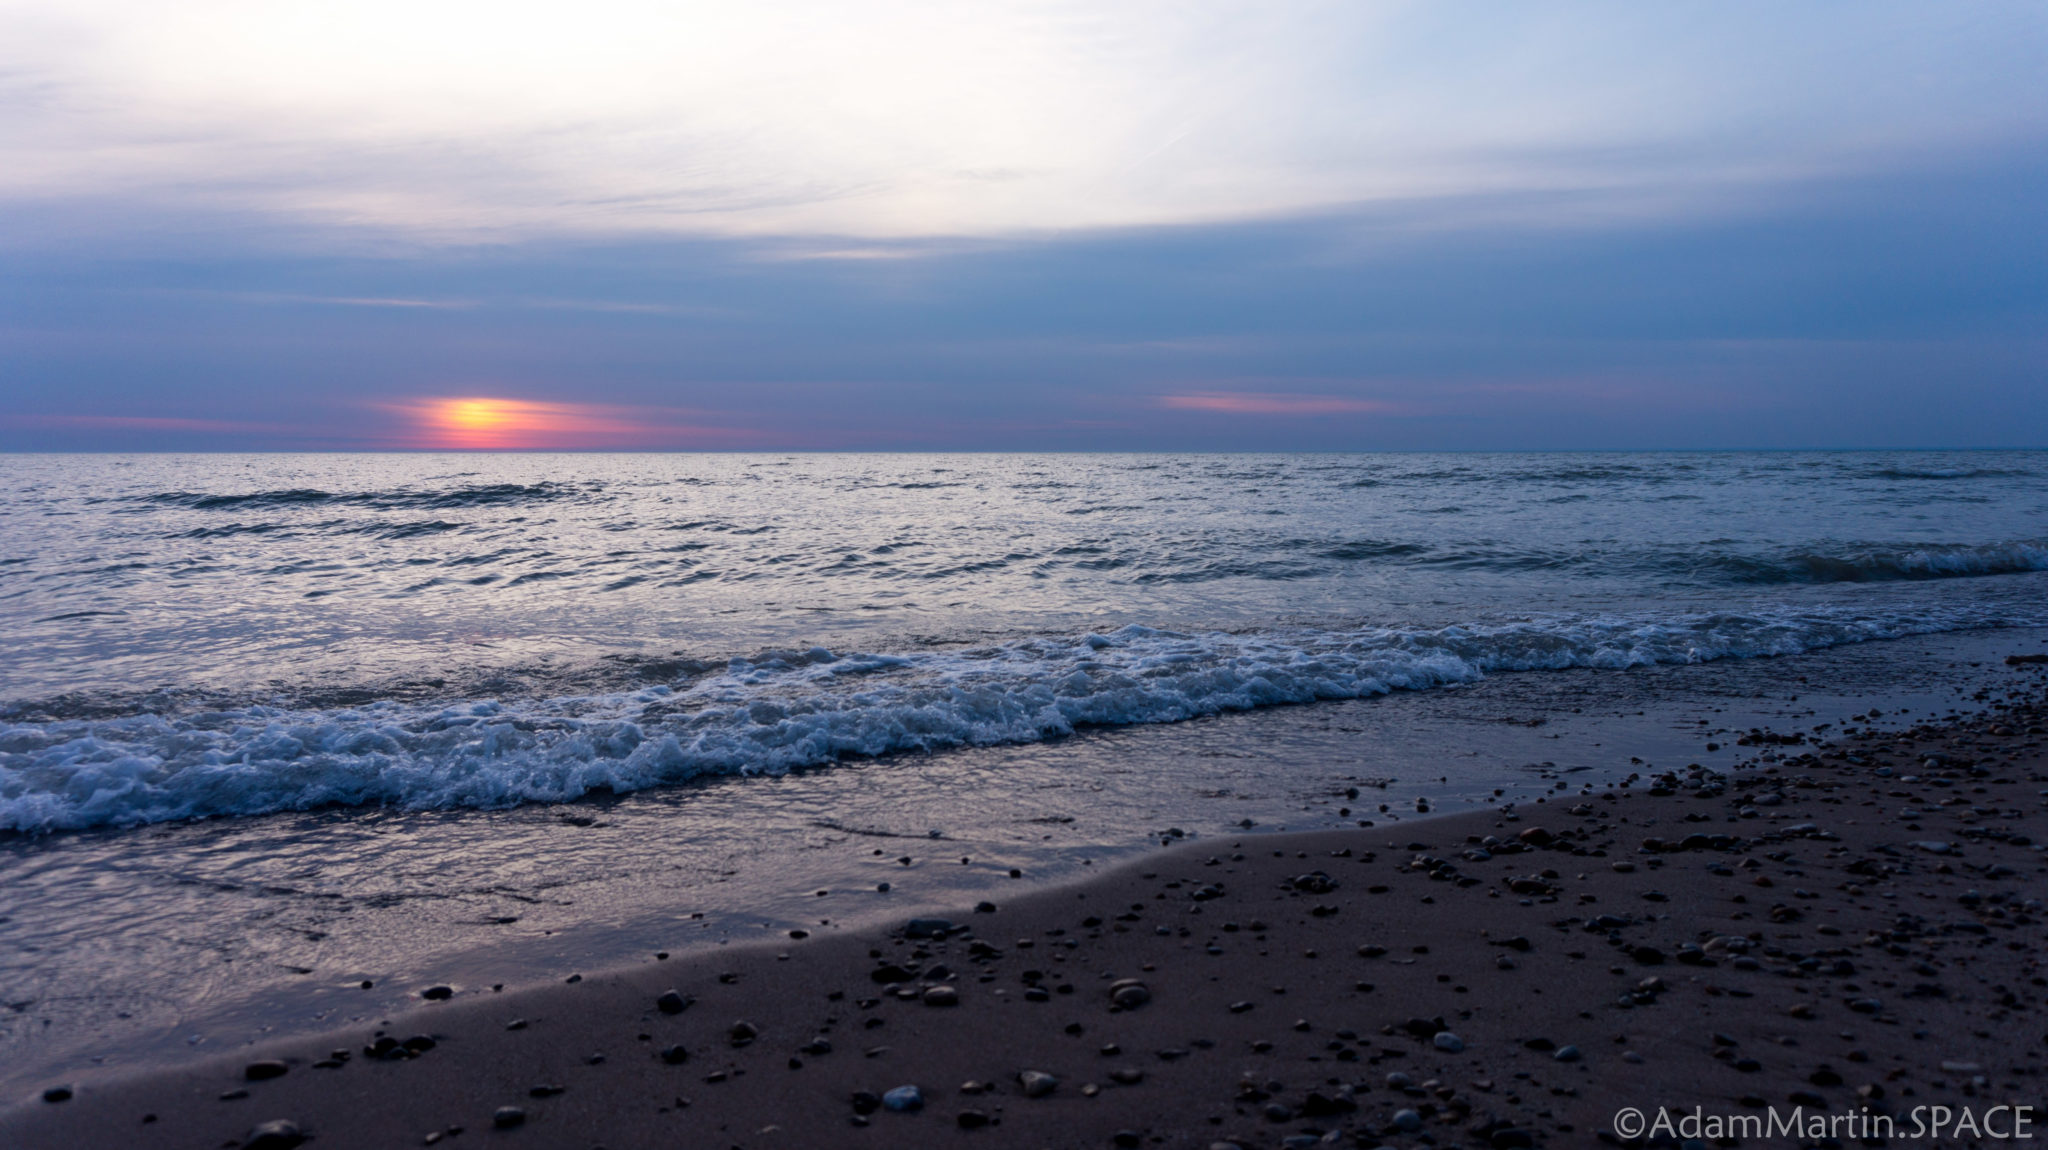 Sunrise over Lake Michigan in Kenosha